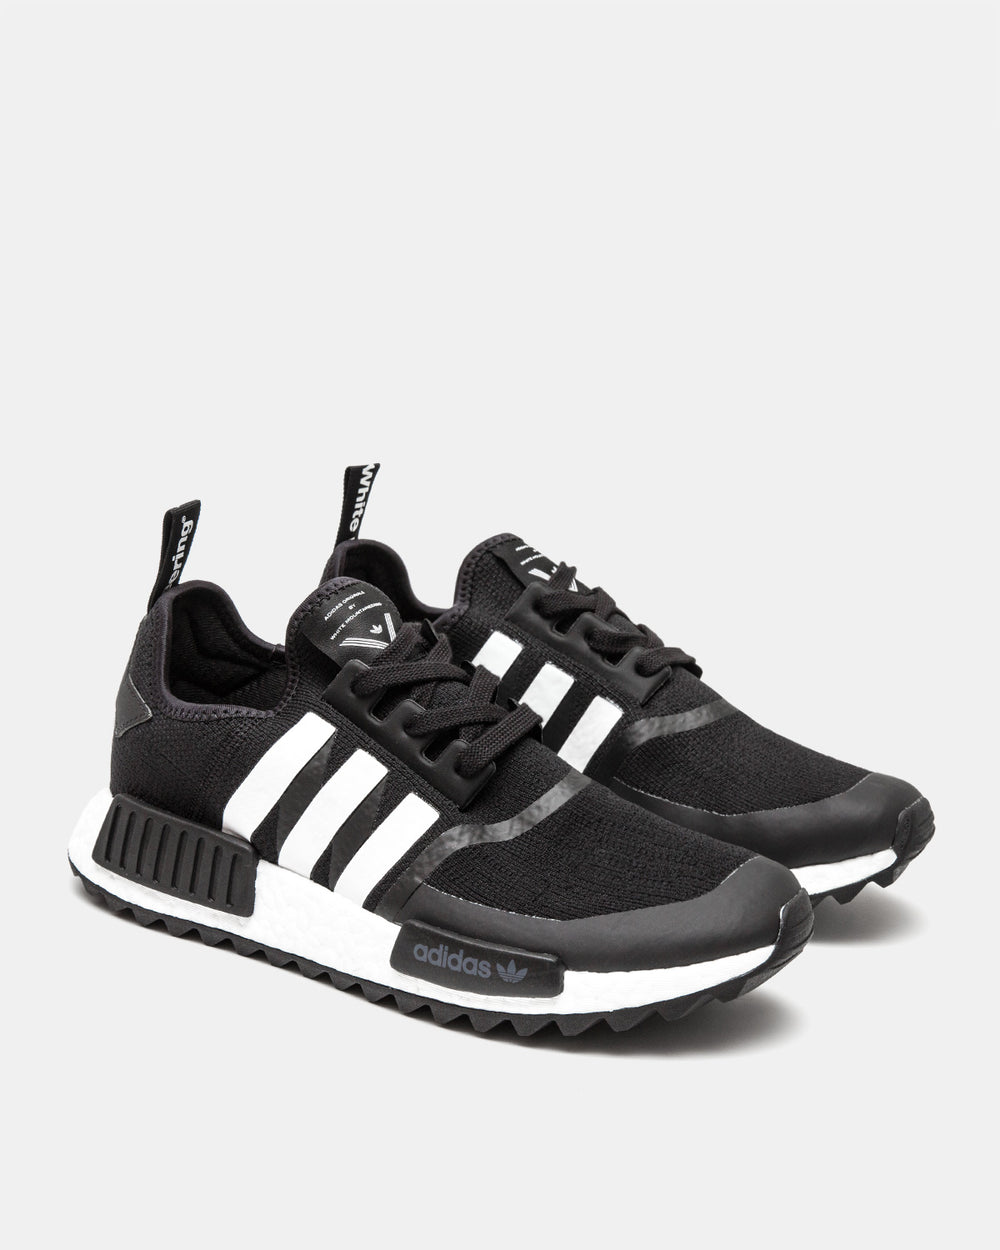 adidas - White Mountaineering NMD Trail (Core Black | Footwear White)